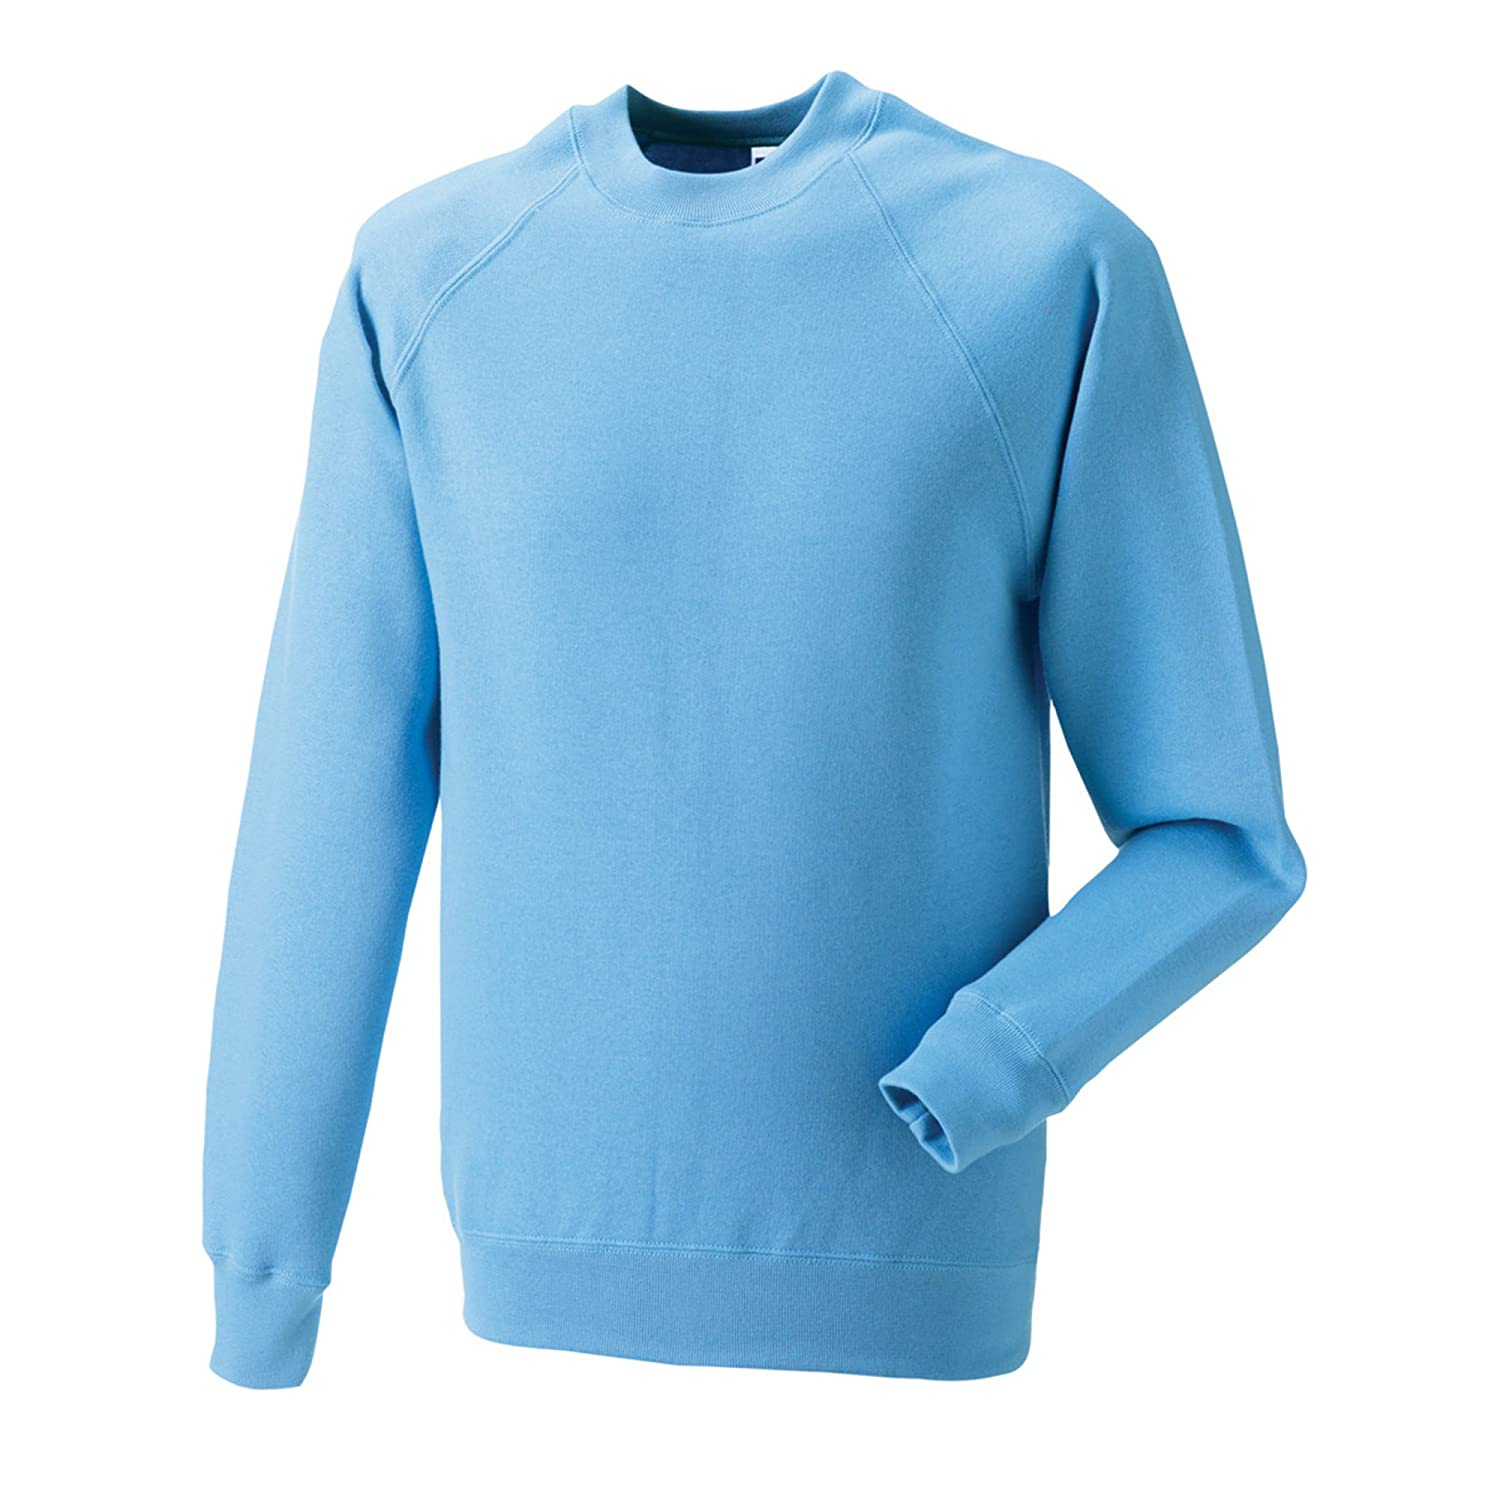 Russell Athletic Colors Classic Sweatshirt